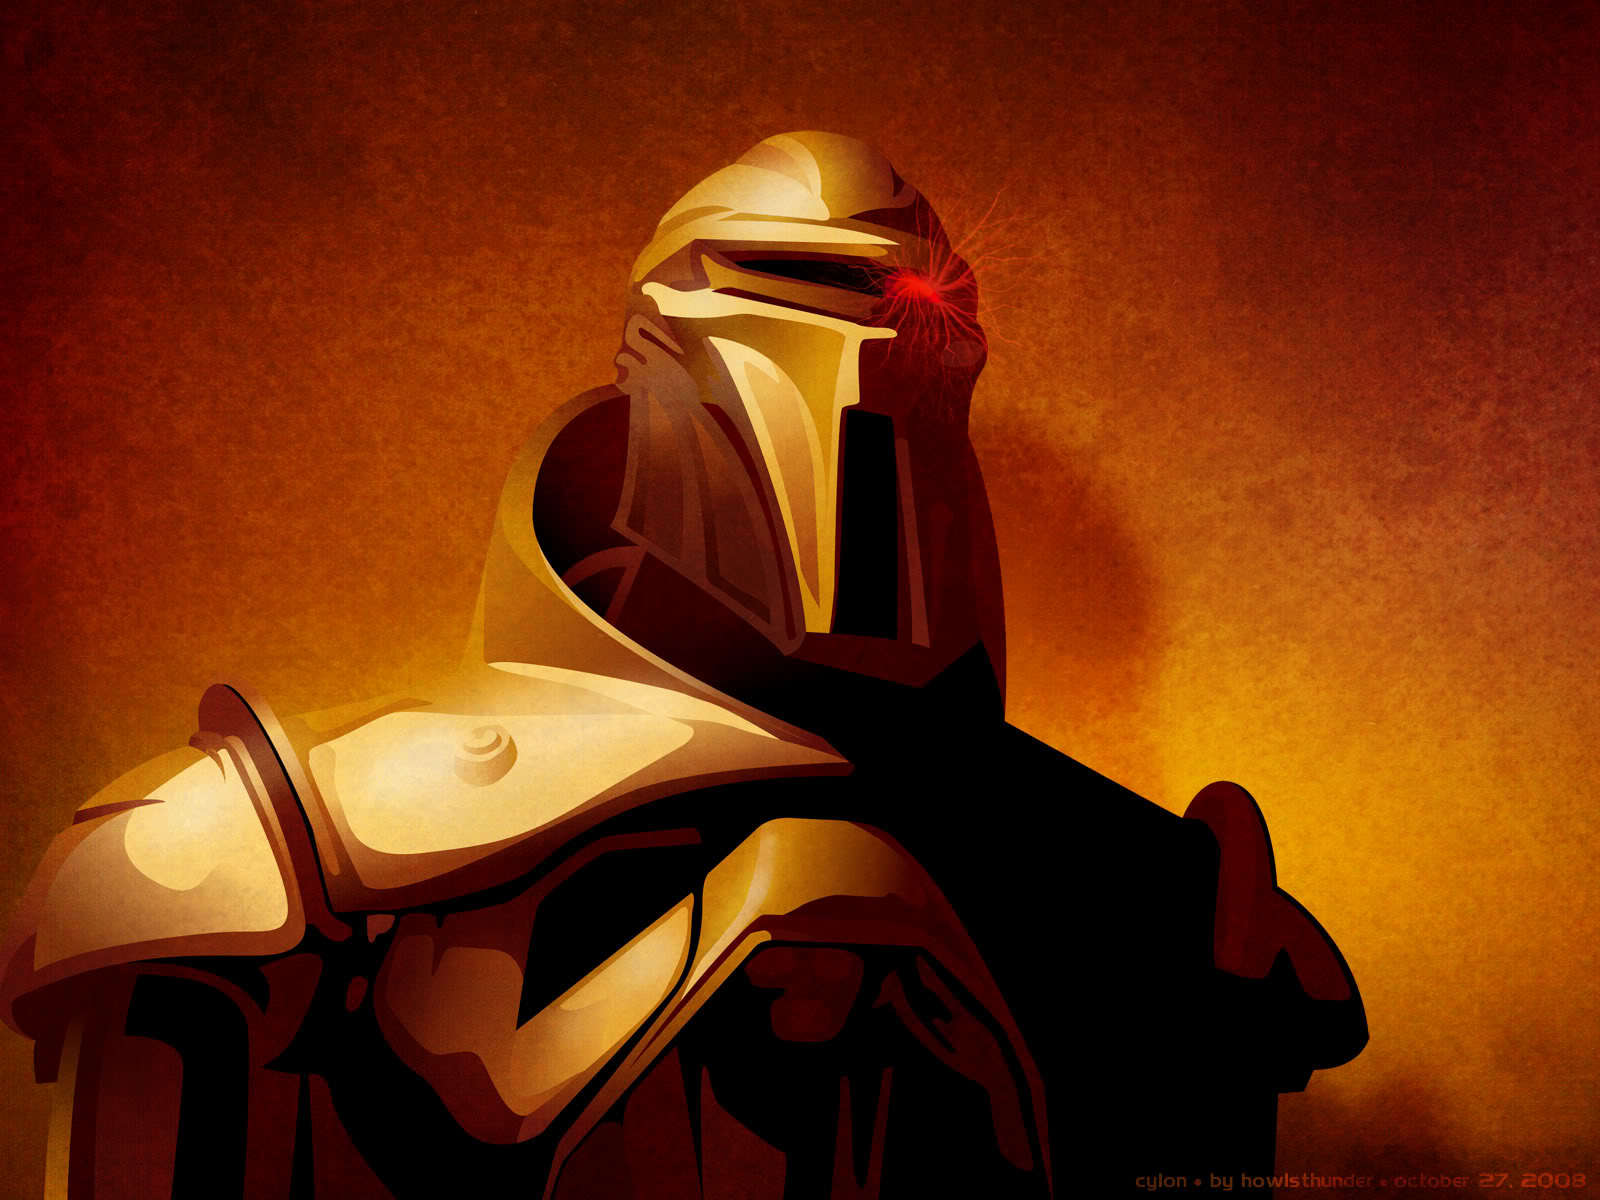 battlestar galactica cylon Centurion HD Wallpaper